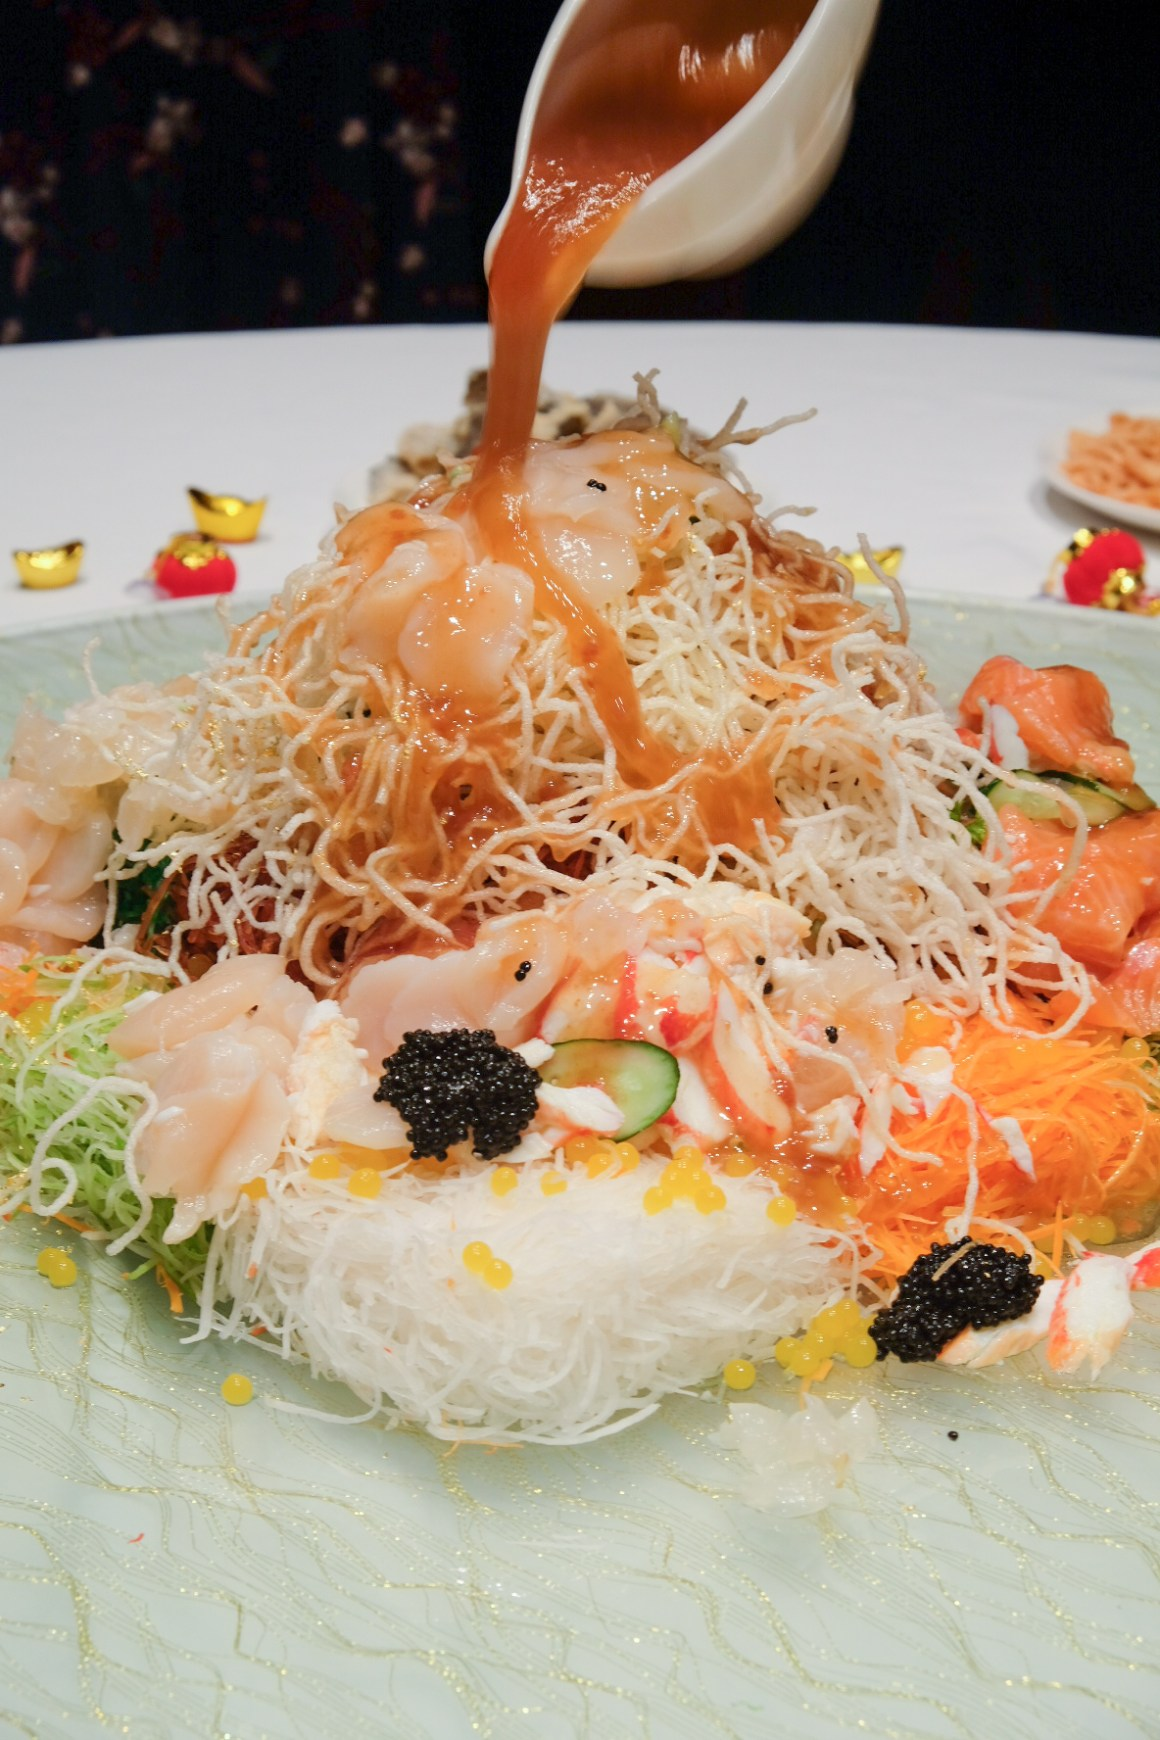 Usher 2020 Lunar New Year With Delectable Dining Options - Lobster, Alaskan Crab, Scallop, Salmon, Caviar & Crispy Fish Skin Yu Sheng with White Peach Sauce & Passion Fruit Pearls